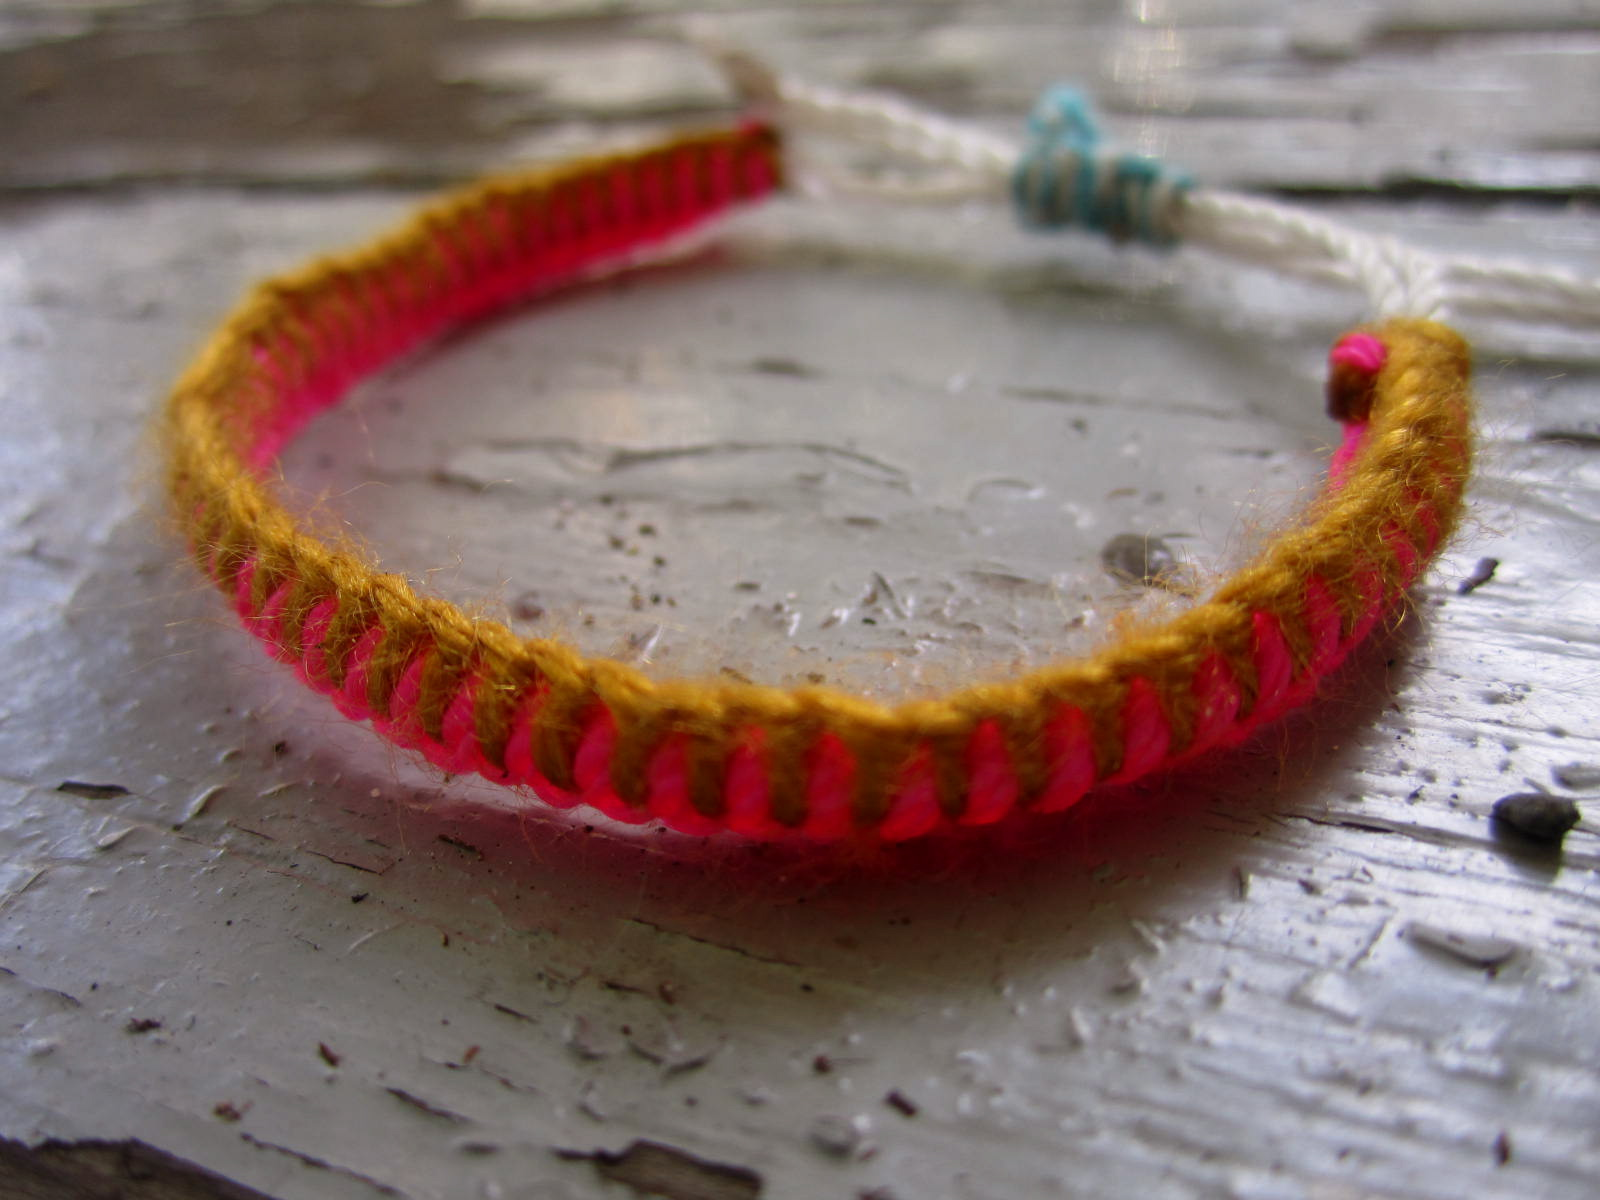 How to make a friendship bracelet with 3 pieces of string